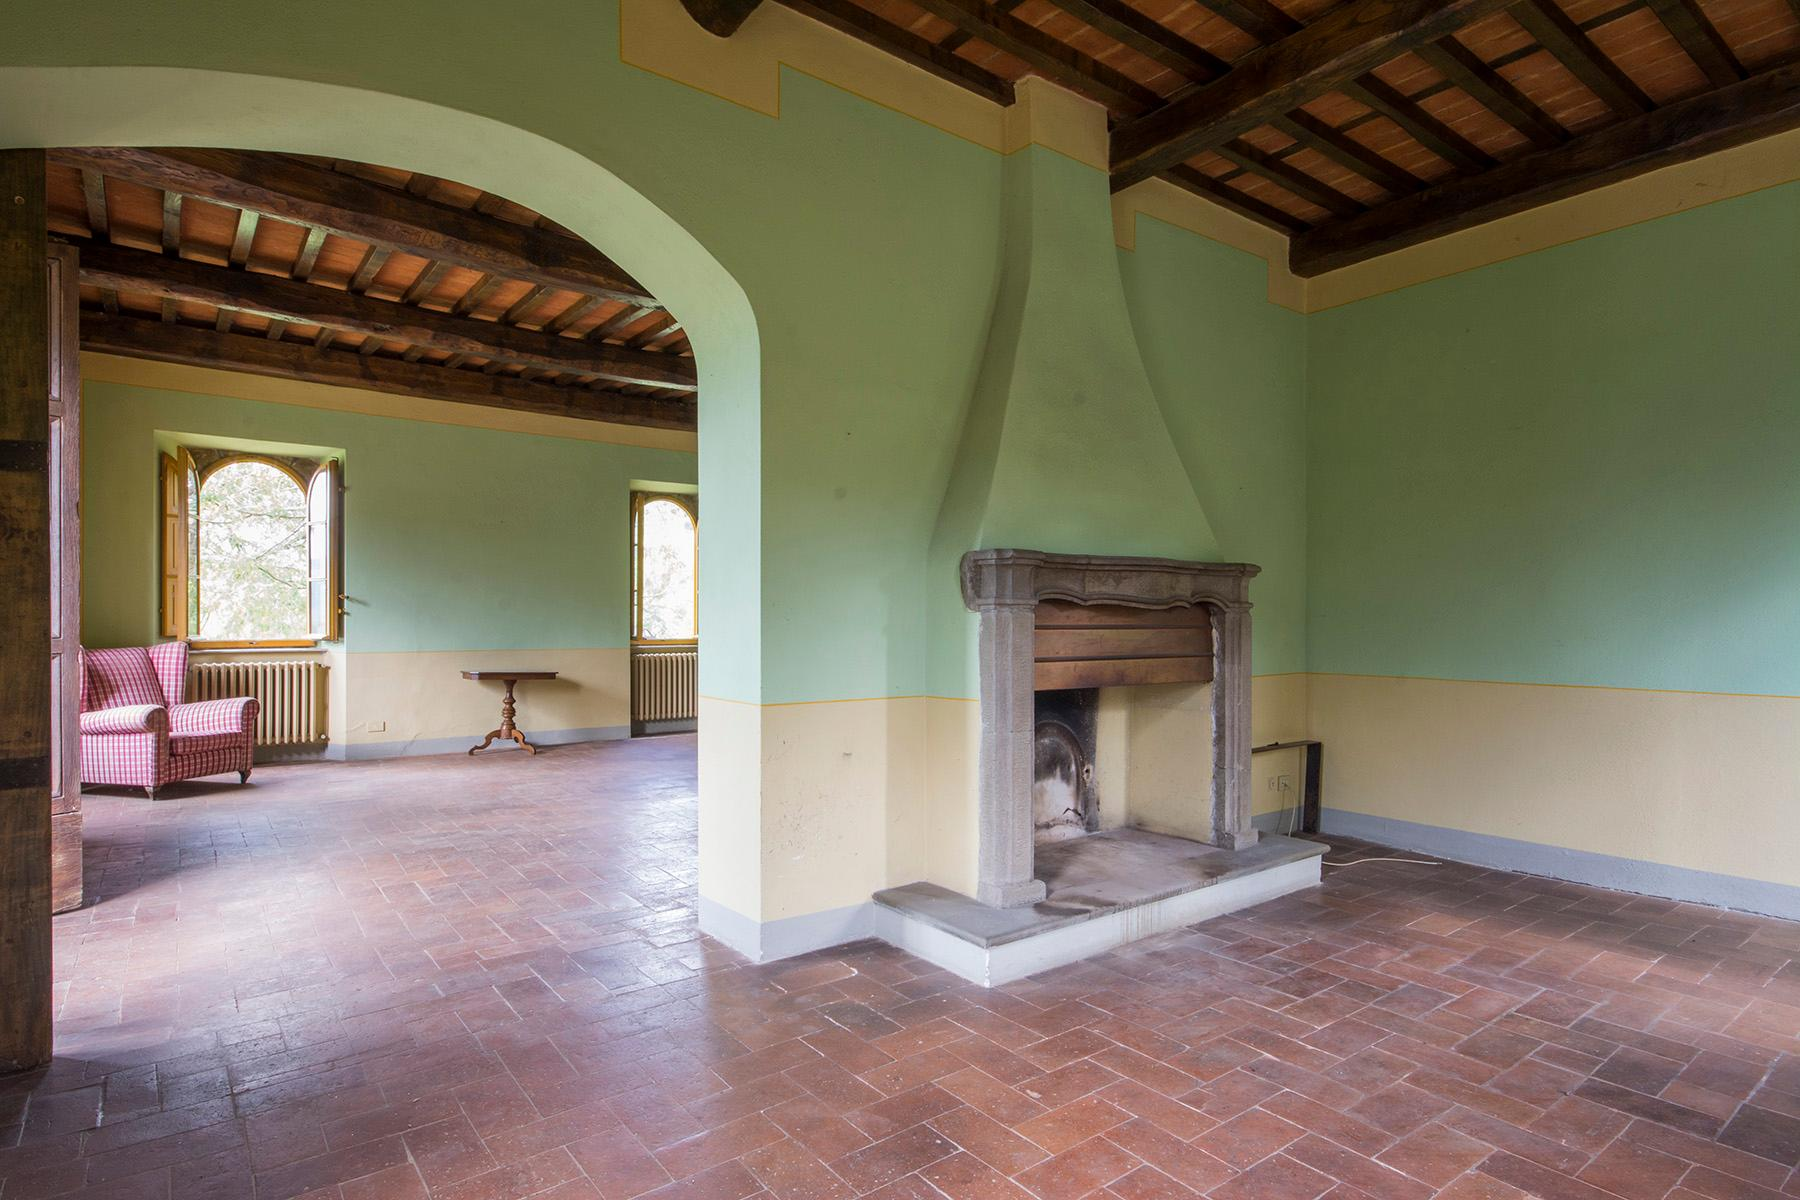 Stunning villa with breathtaking views of the Lucca countryside - 6